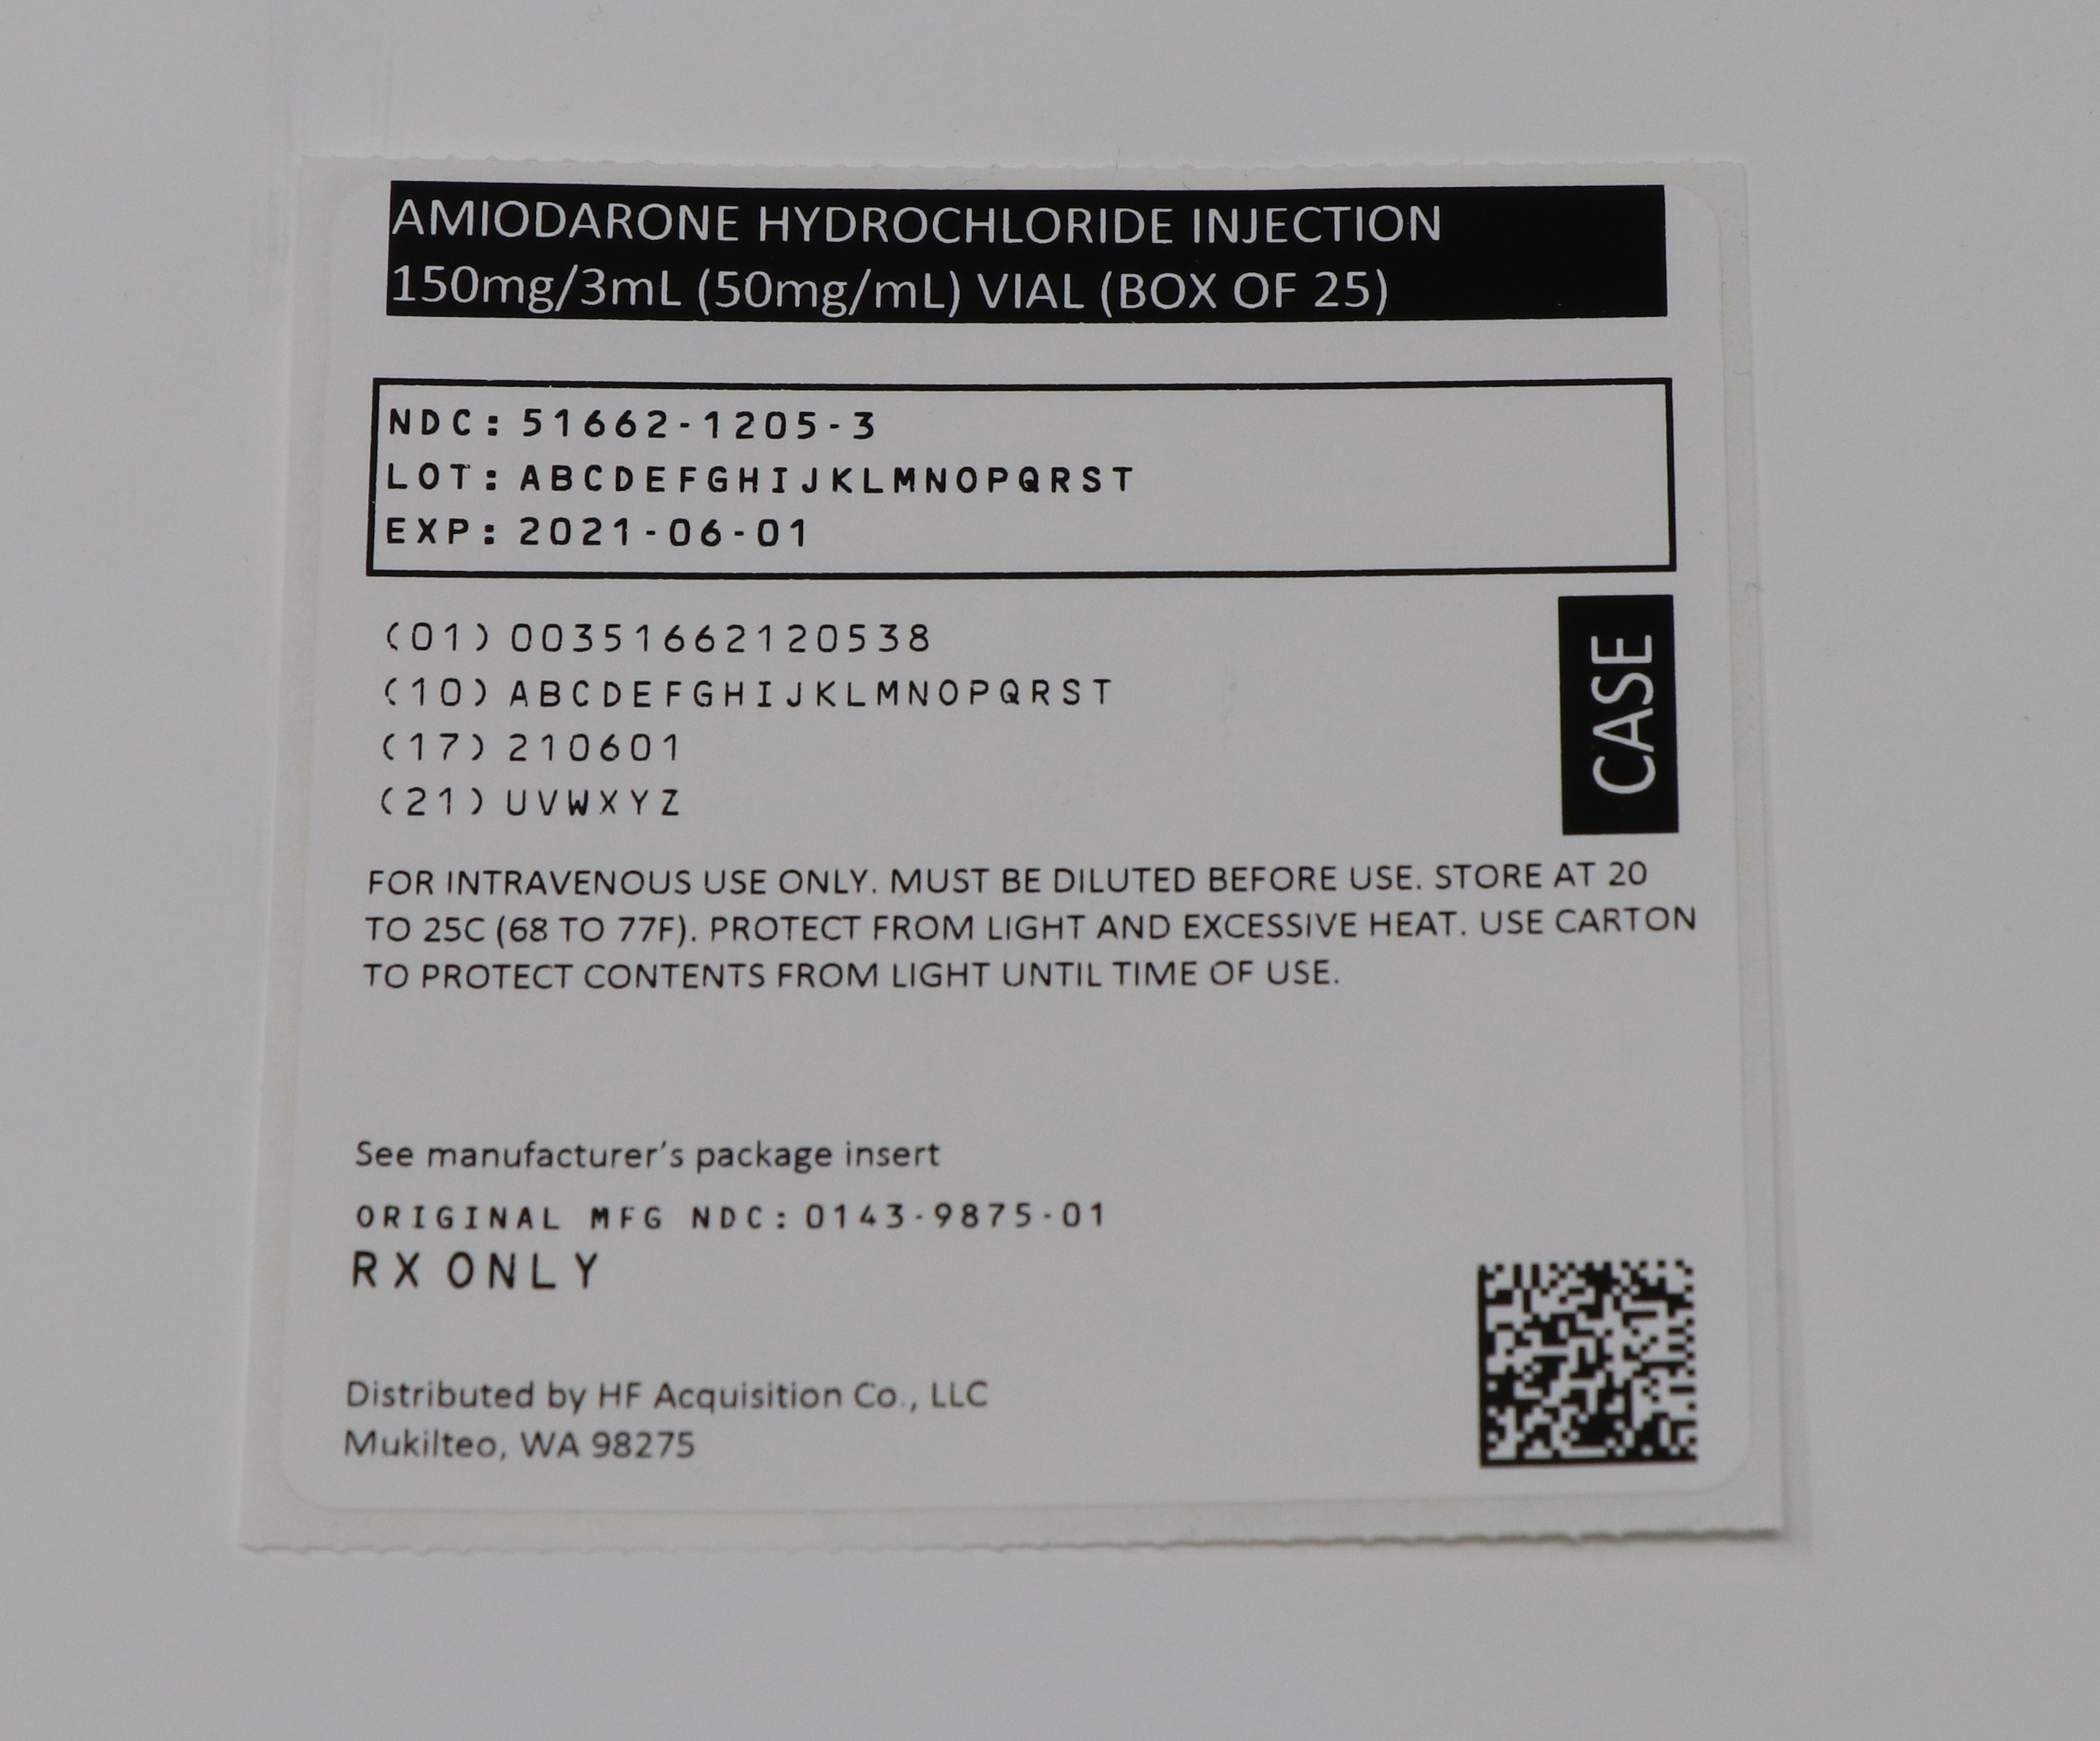 Serialized Case Label